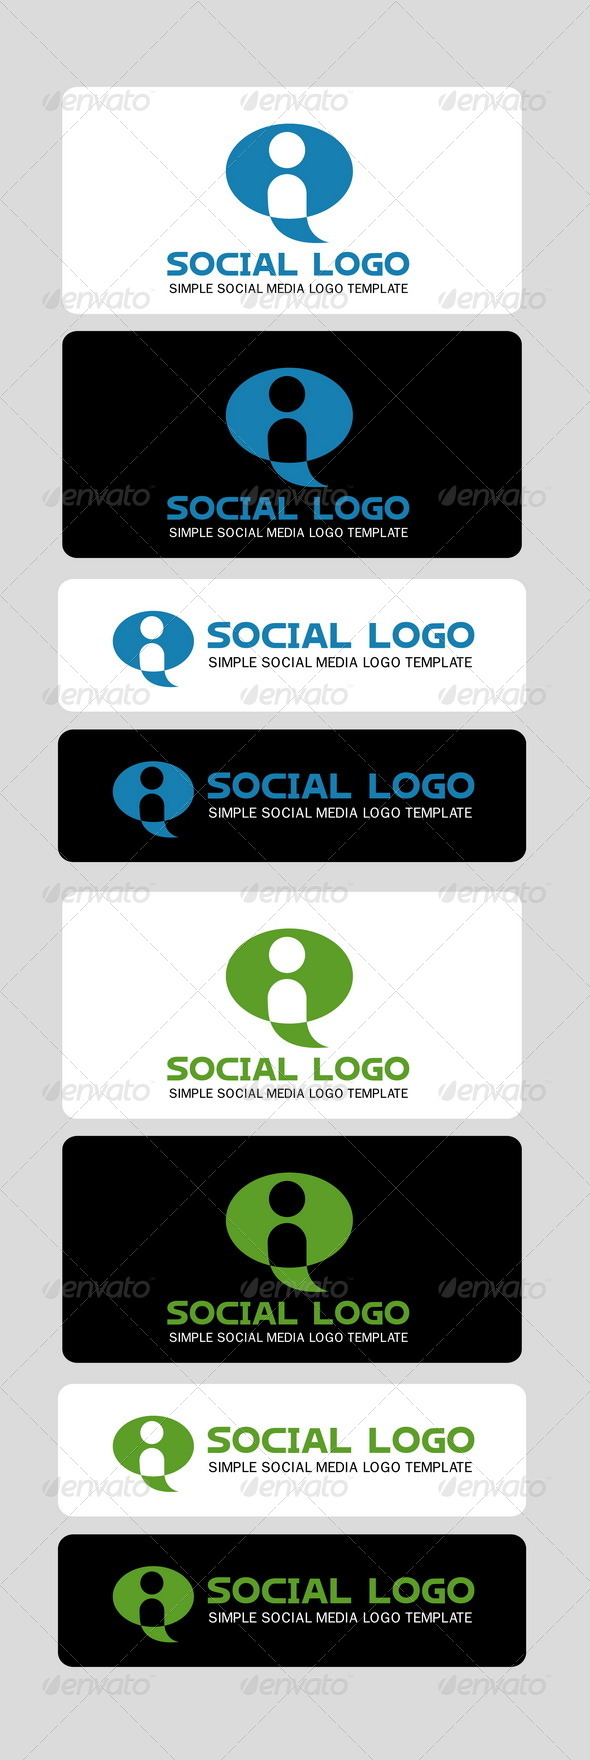 GraphicRiver Social Logo Template 3944100